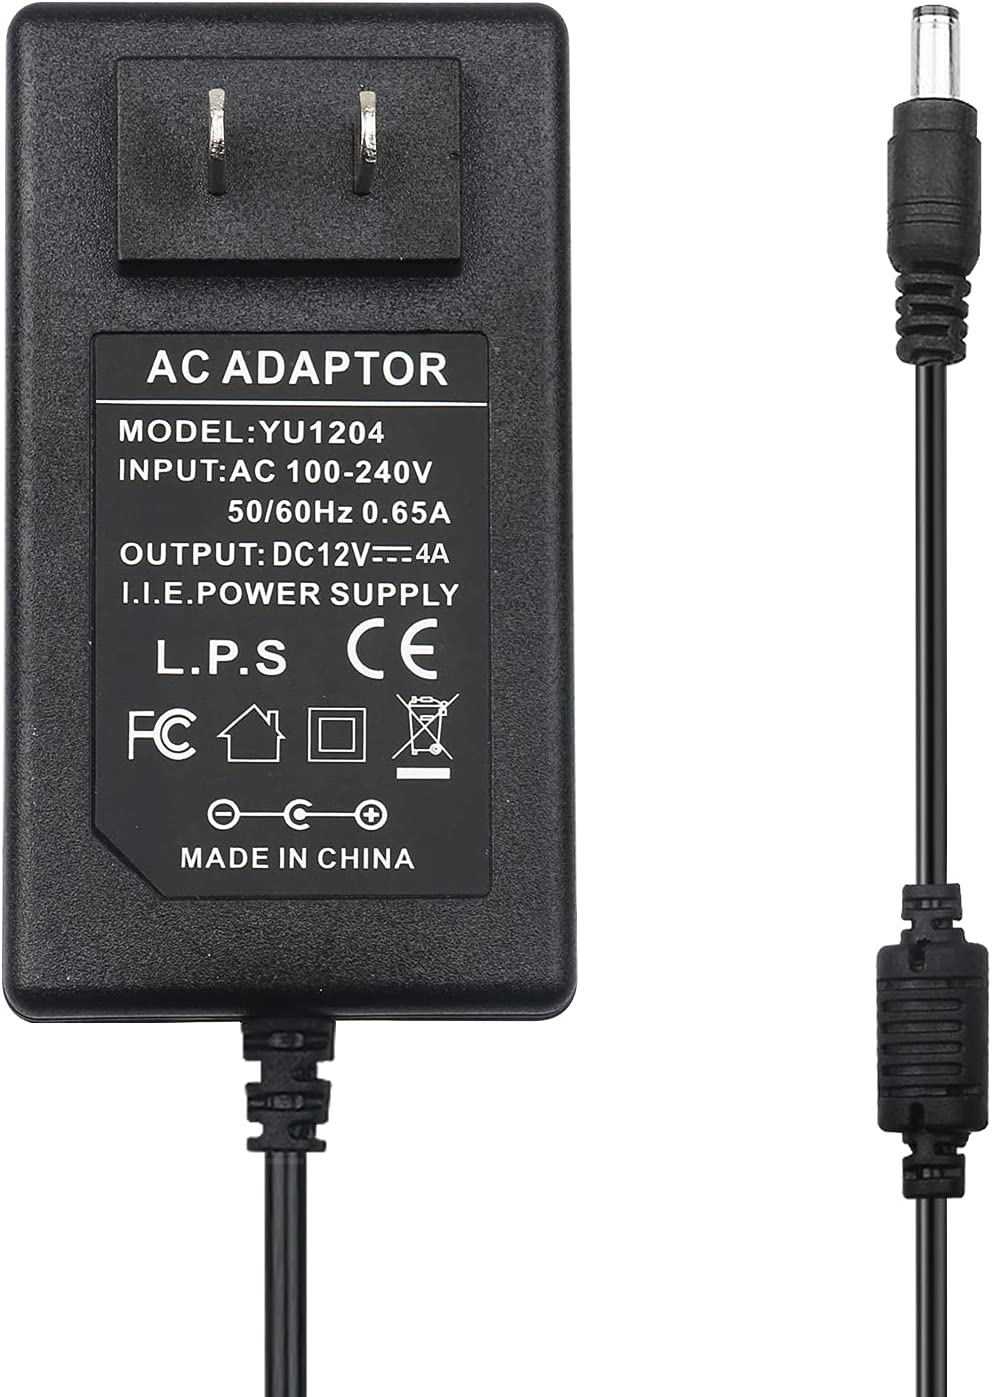 LeTaoXing 12V 4A Power Supply Adapter, AC 100-240V to DC 12V 48W Switching Power Supply Transformers 12V/4A for 12V 3528/5050 LED Strip Lights, LCD Monitor, 48W Max,Replacement 12V 3.5A